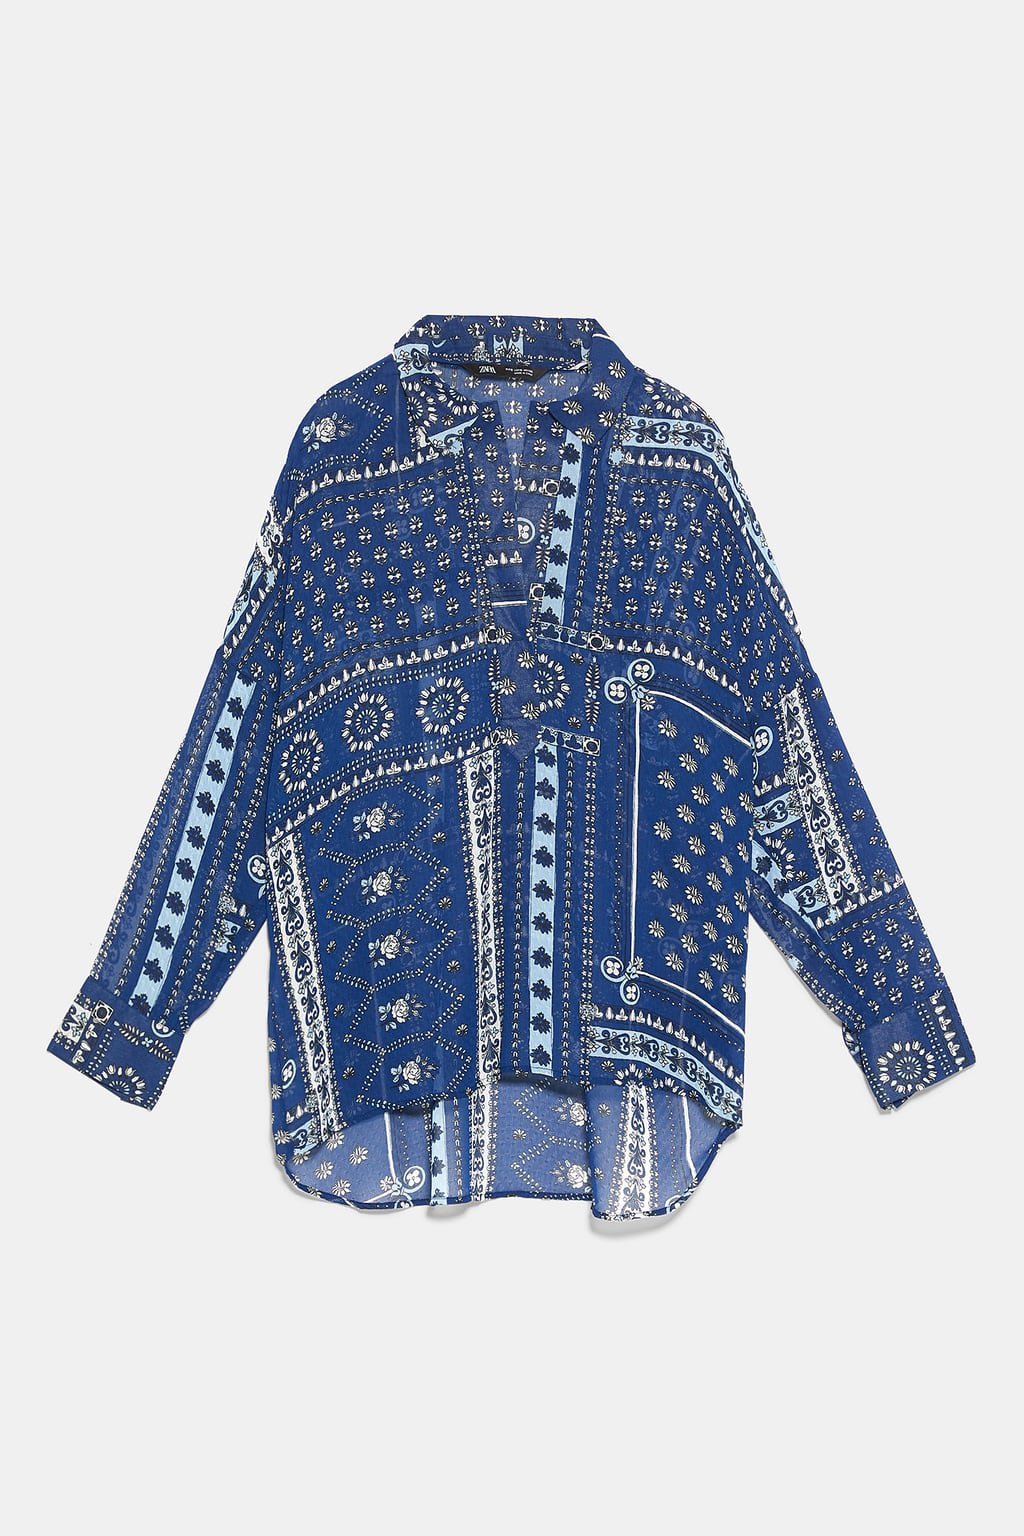 PATCHWORK PRINT BLOUSE - View All-SHIRTS   BLOUSES-WOMAN   ZARA United States